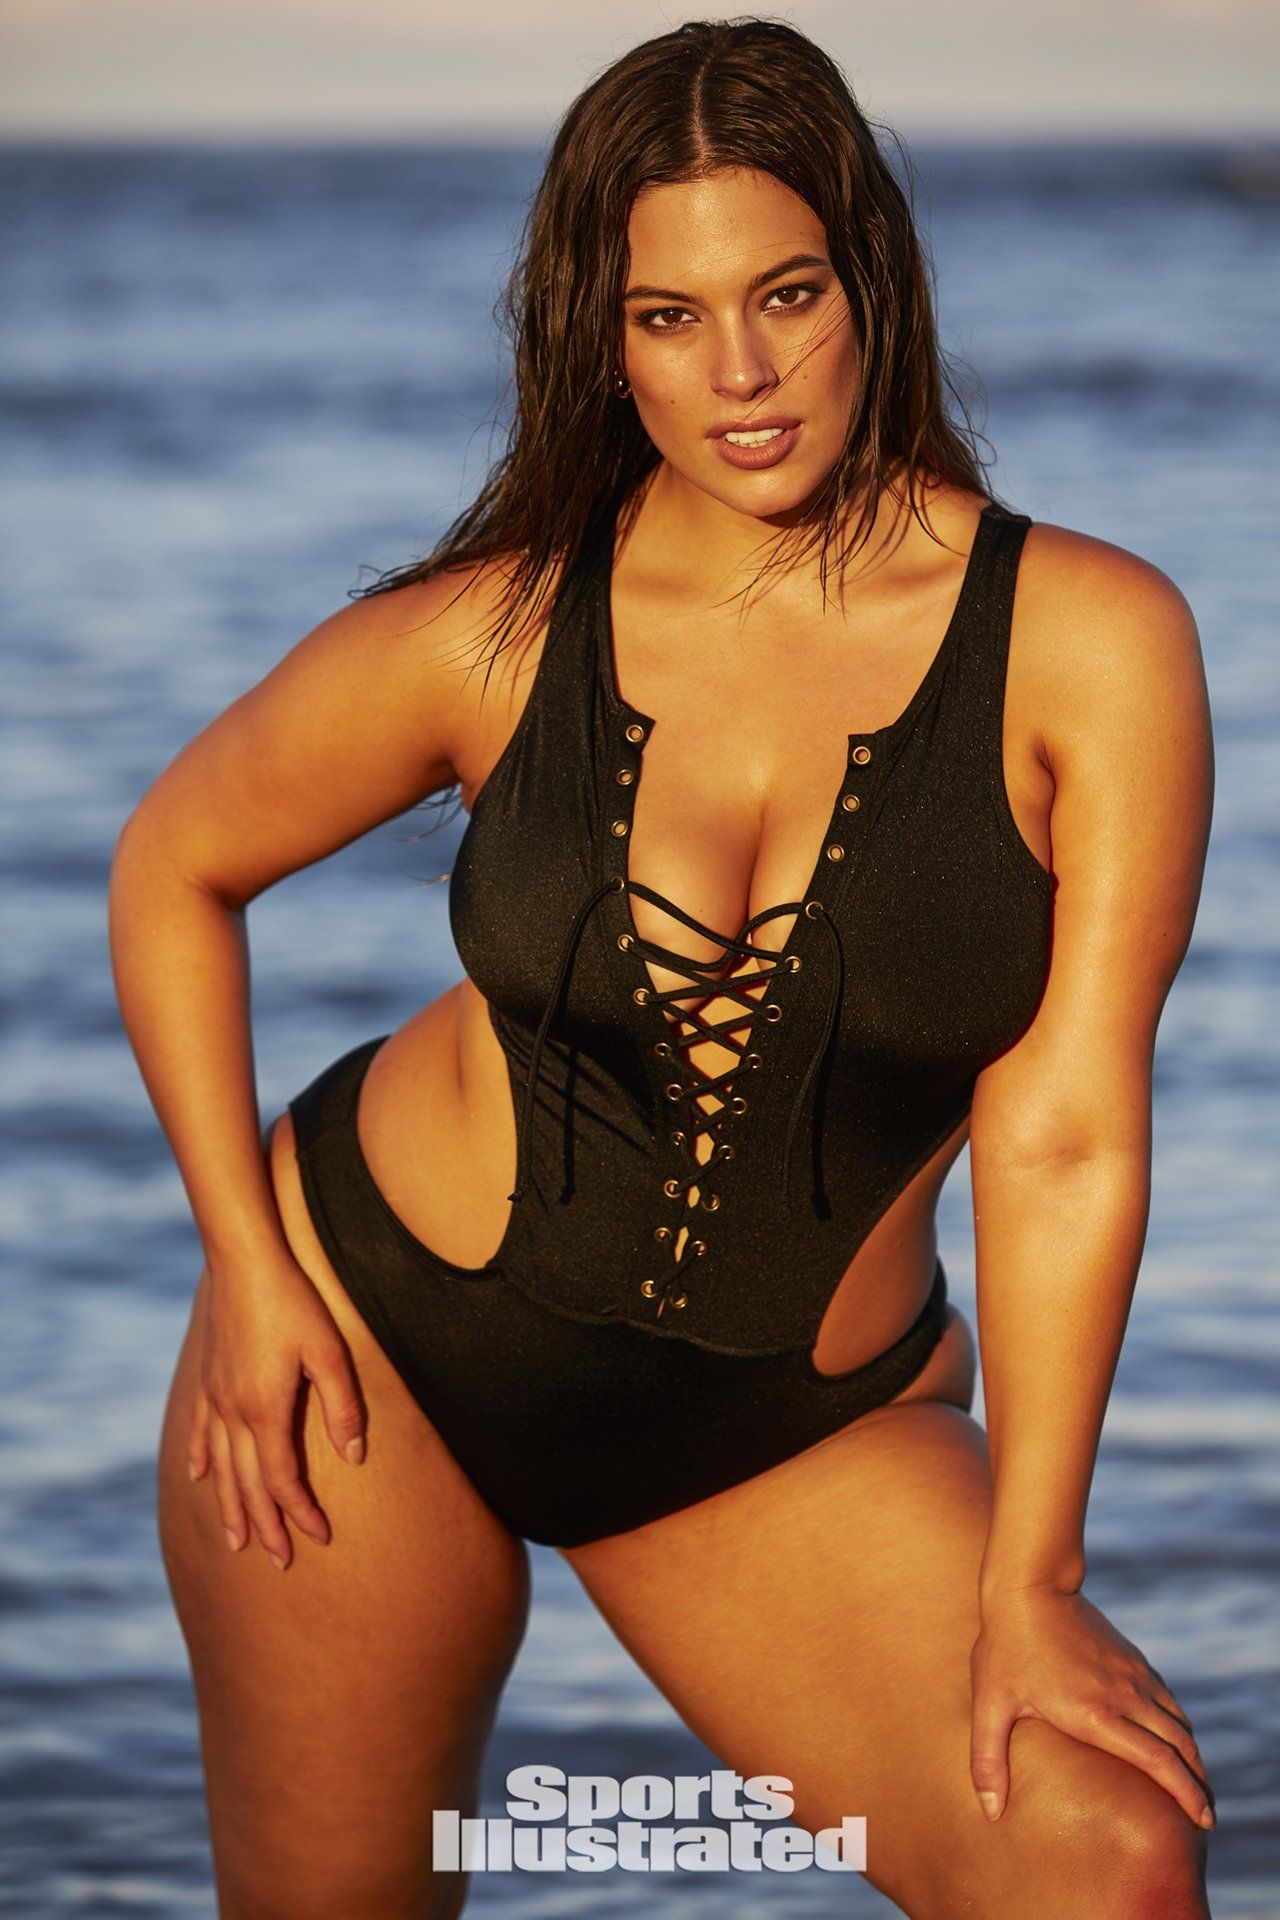 Lane Bryant pioneered plus-size fashion in the early 20th century and remains the most popular outlet for curvy women. Lane Bryant coupons are available for both in-store and online shoppers with discounts ranging from 20 percent to 50 percent.